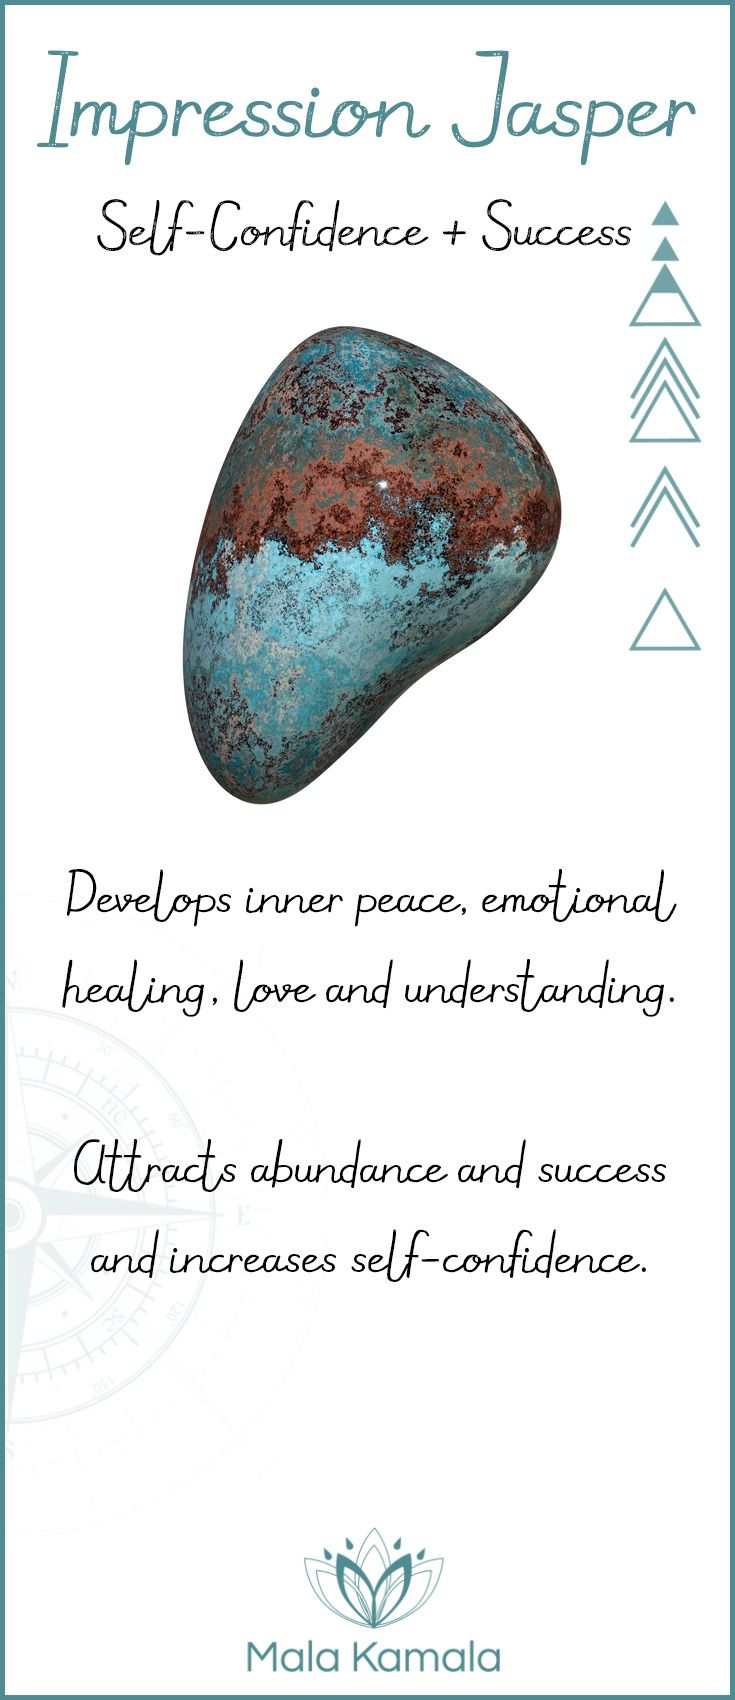 best ideas about meaning of success success what is the meaning and crystal and chakra healing properties of impression jasper a stone for self confidence and success